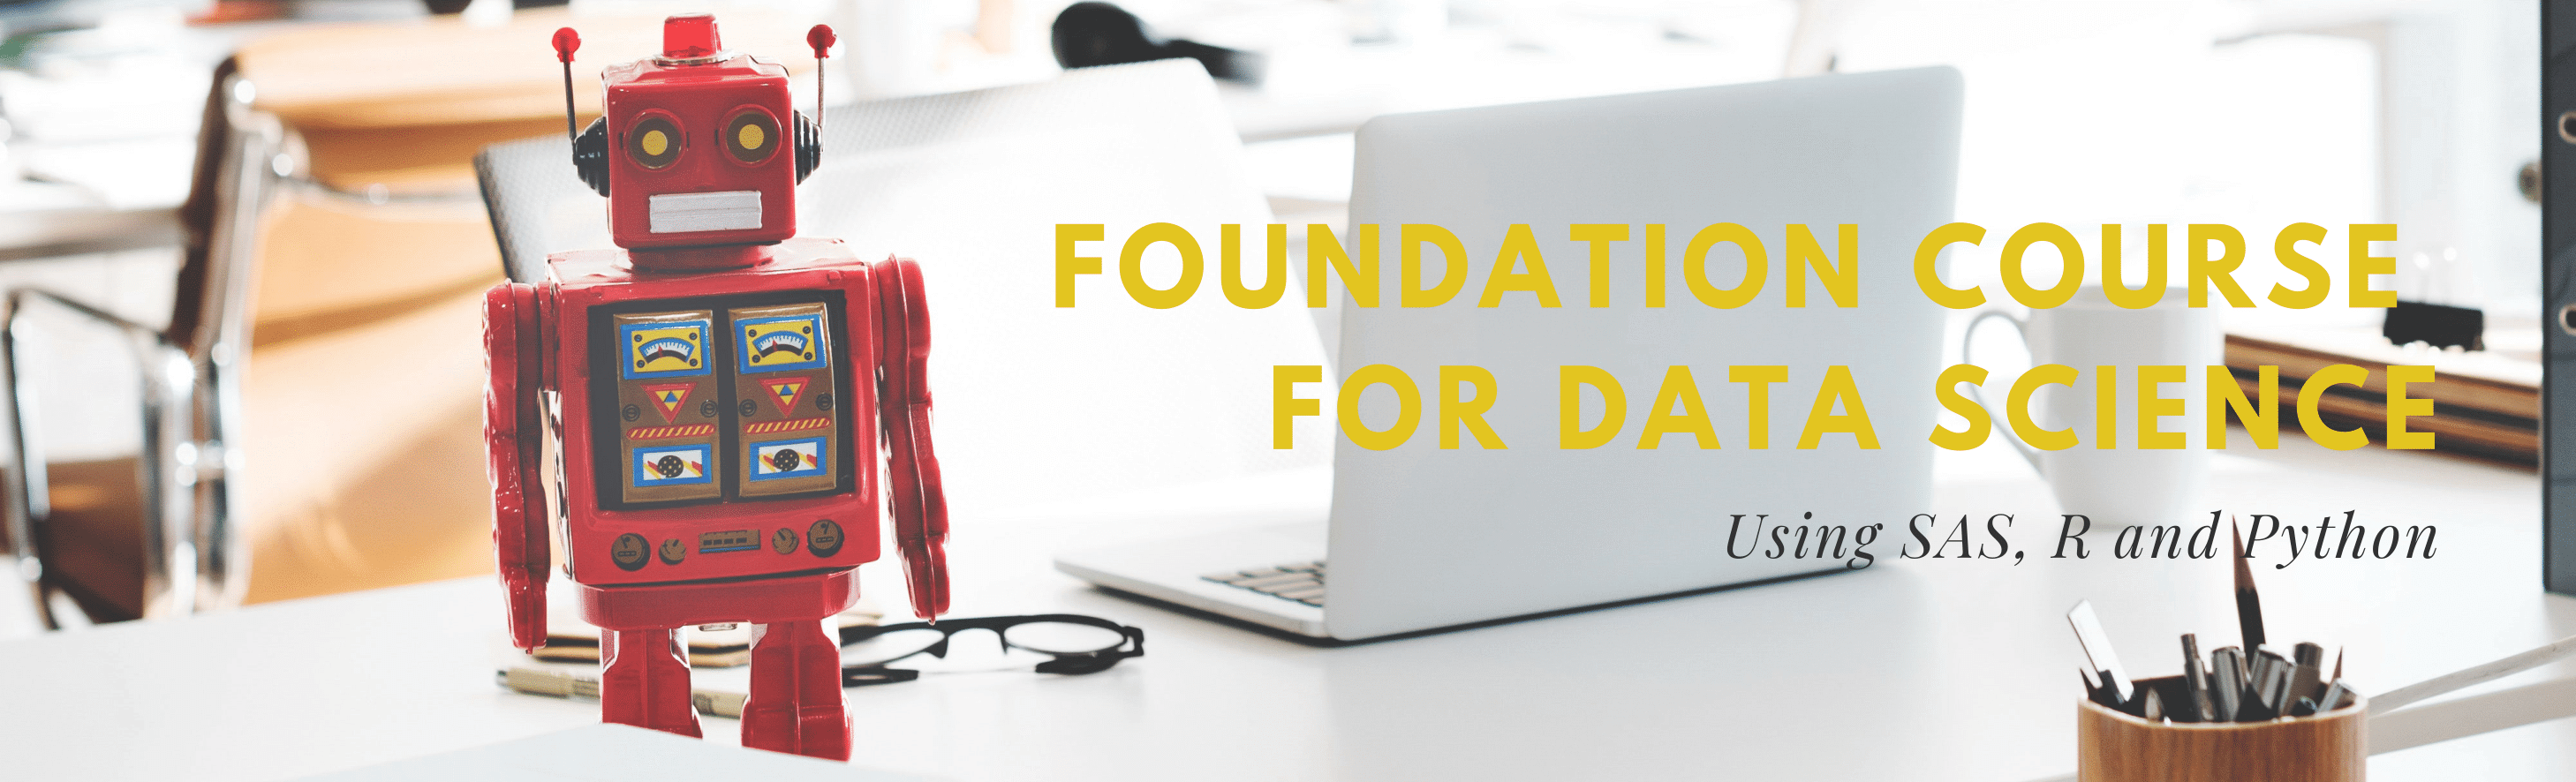 SAS Data Science Foundation Course